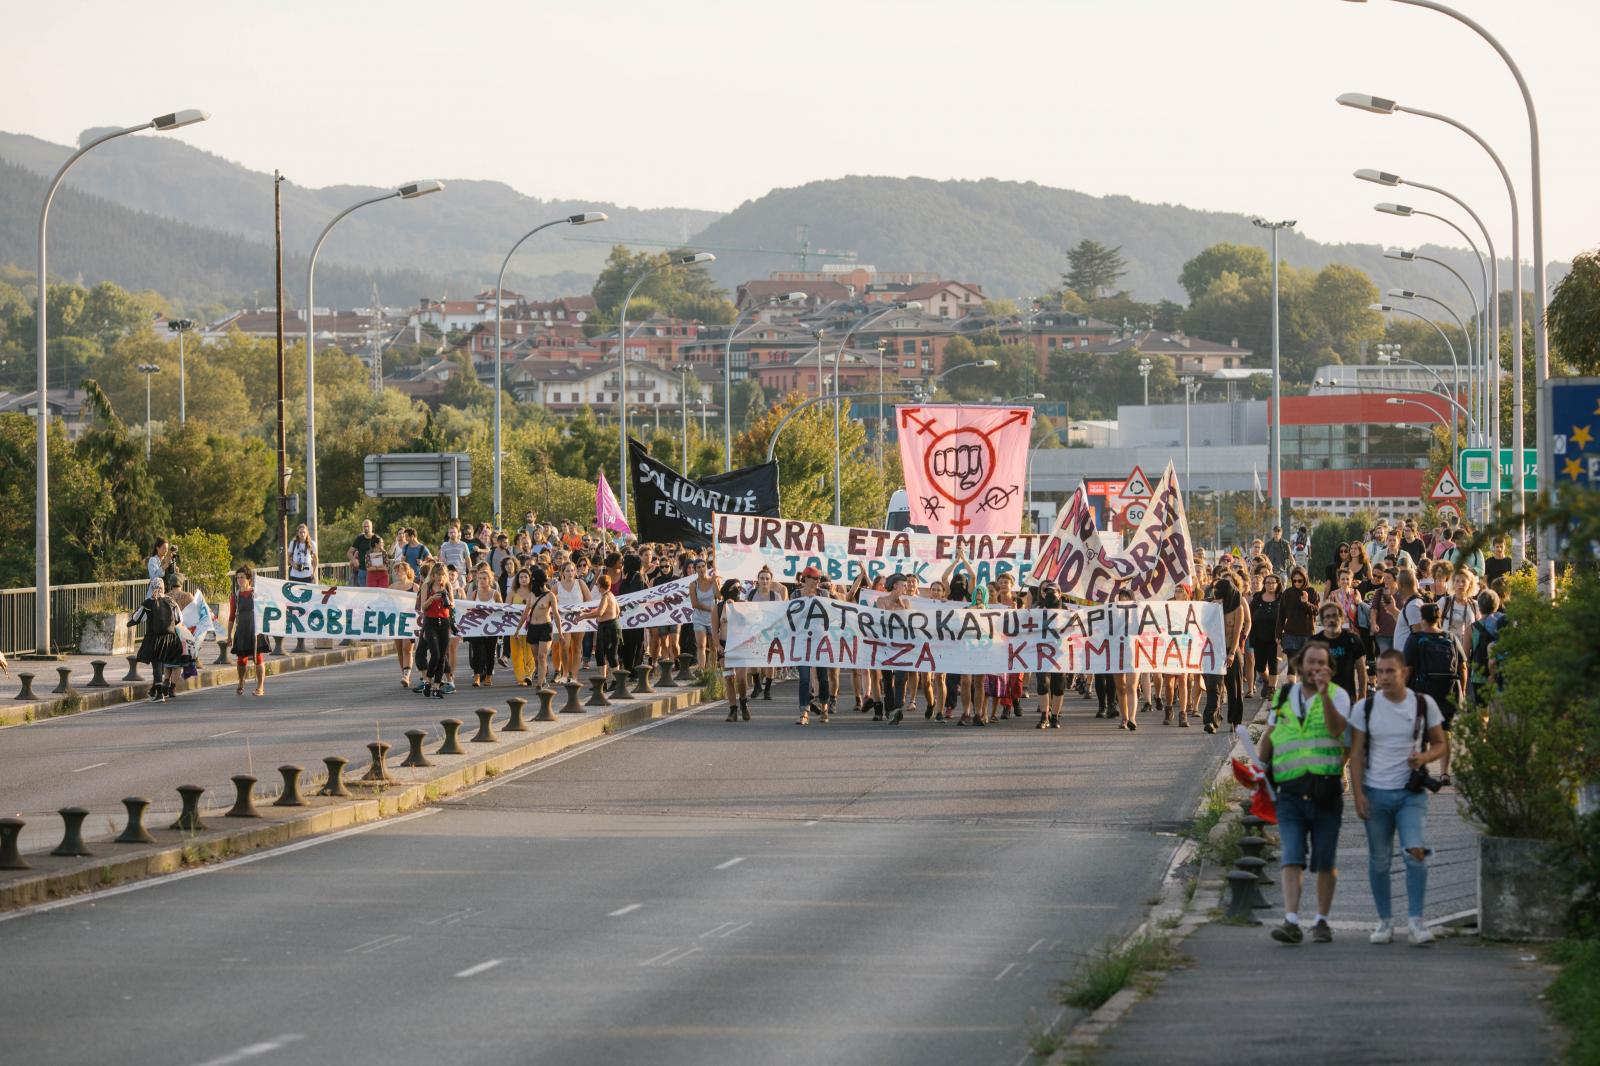 2019-08-23 - Feminist demonstration in Hendaye